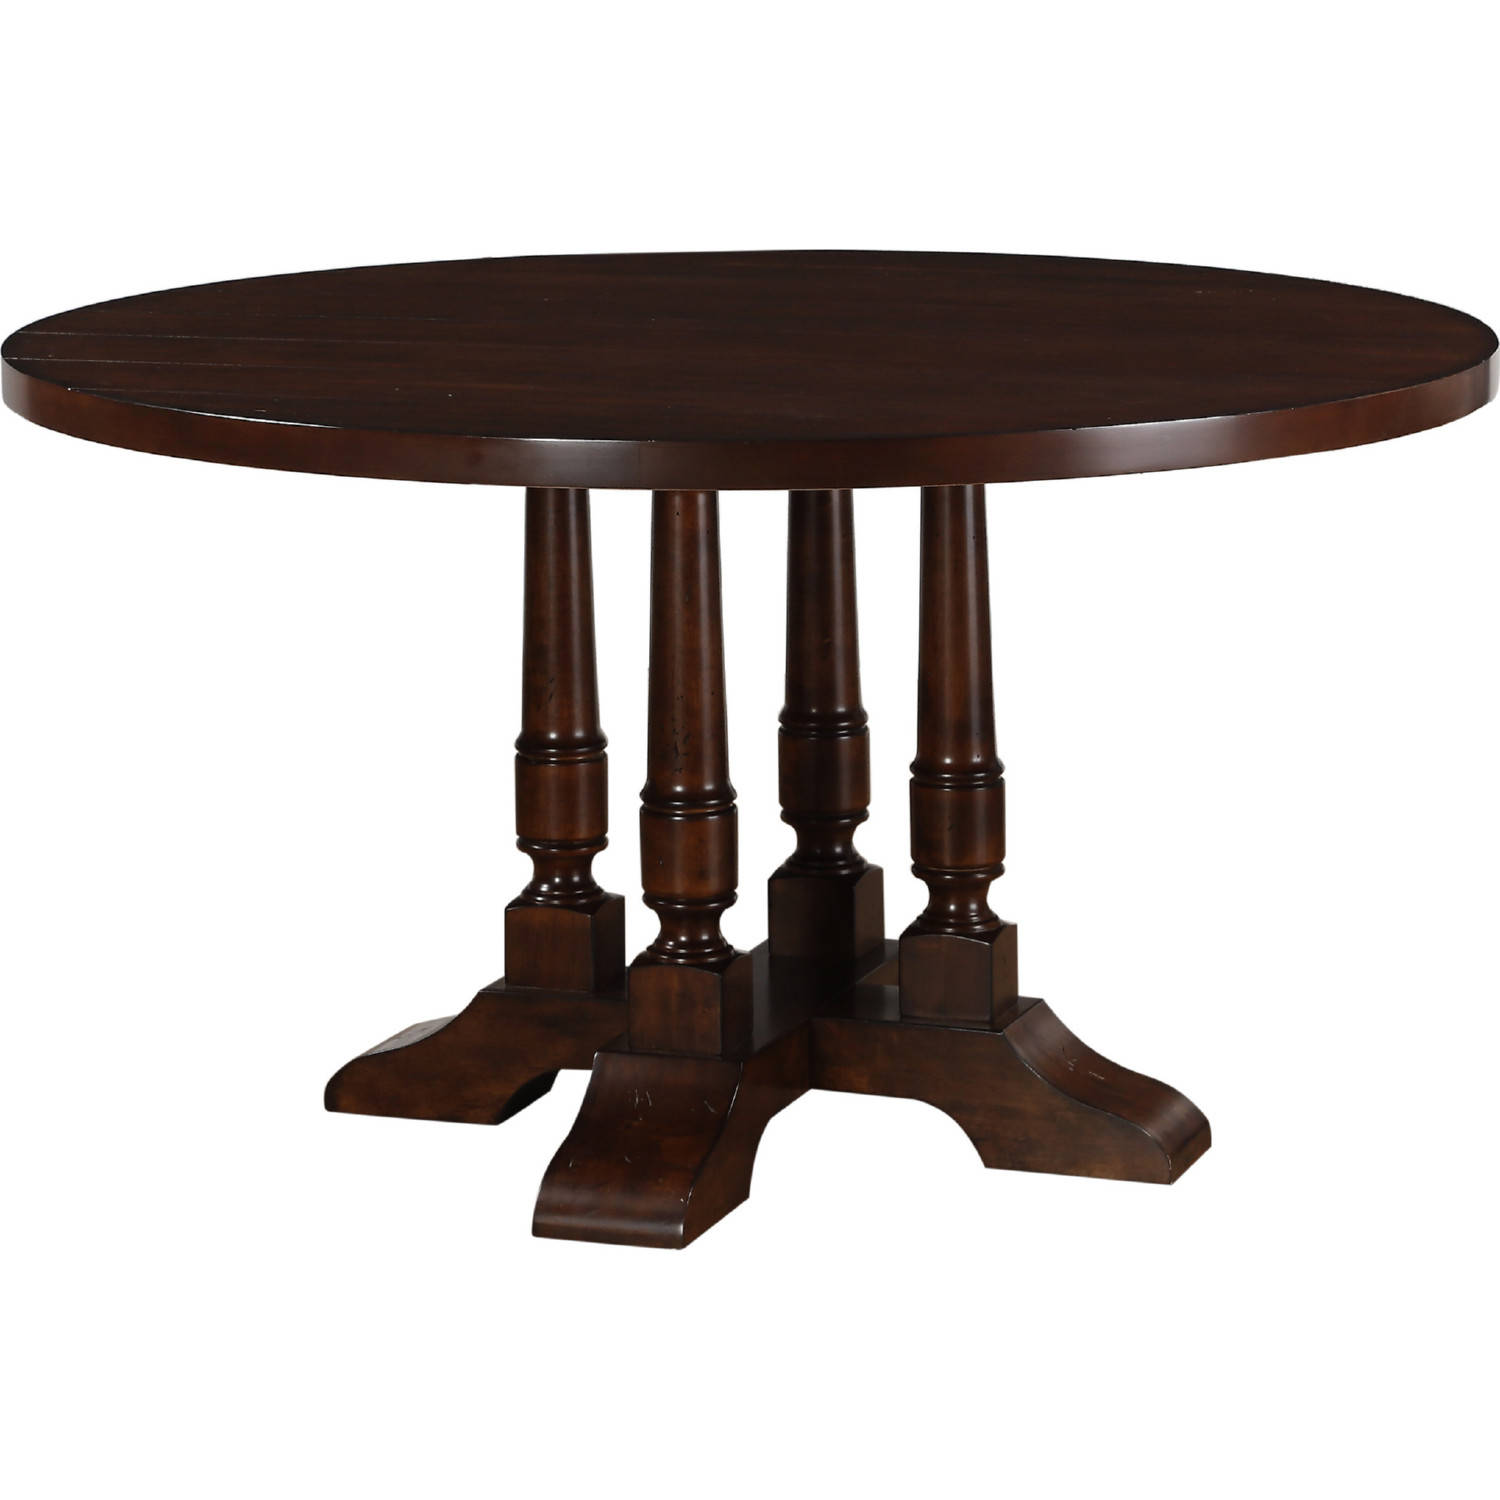 e80b0121009f Acme Furniture Tanner Cherry Round Pedestal Dining Table Click To Enlarge  ...